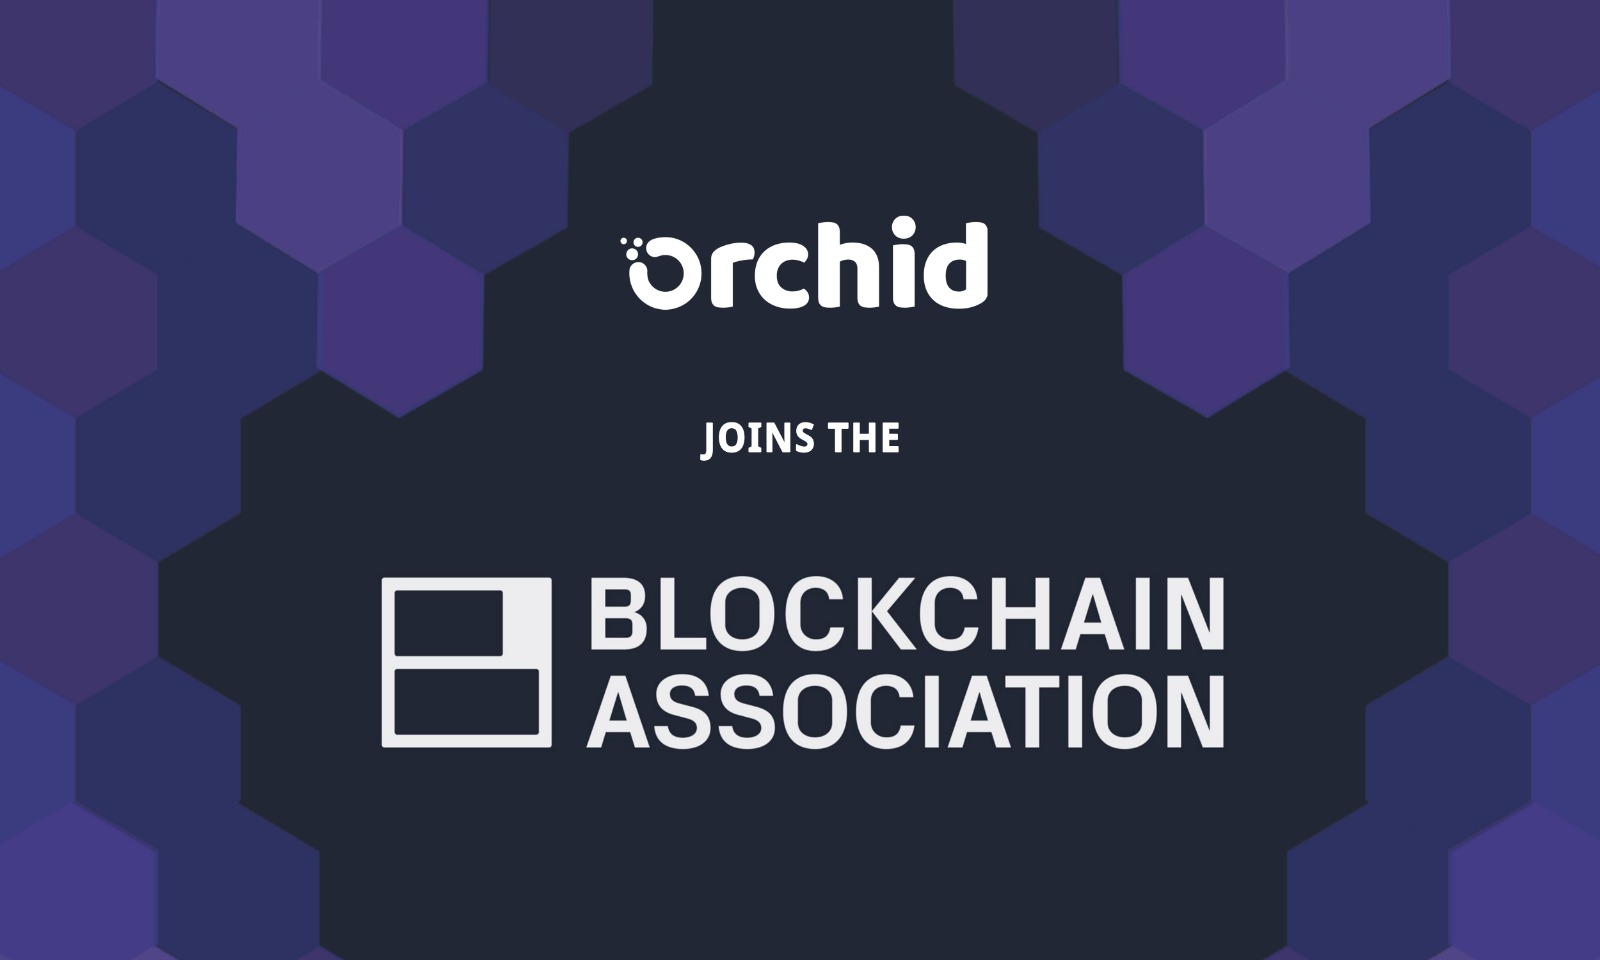 Orchid Joins Leading Industry Group the Blockchain Association